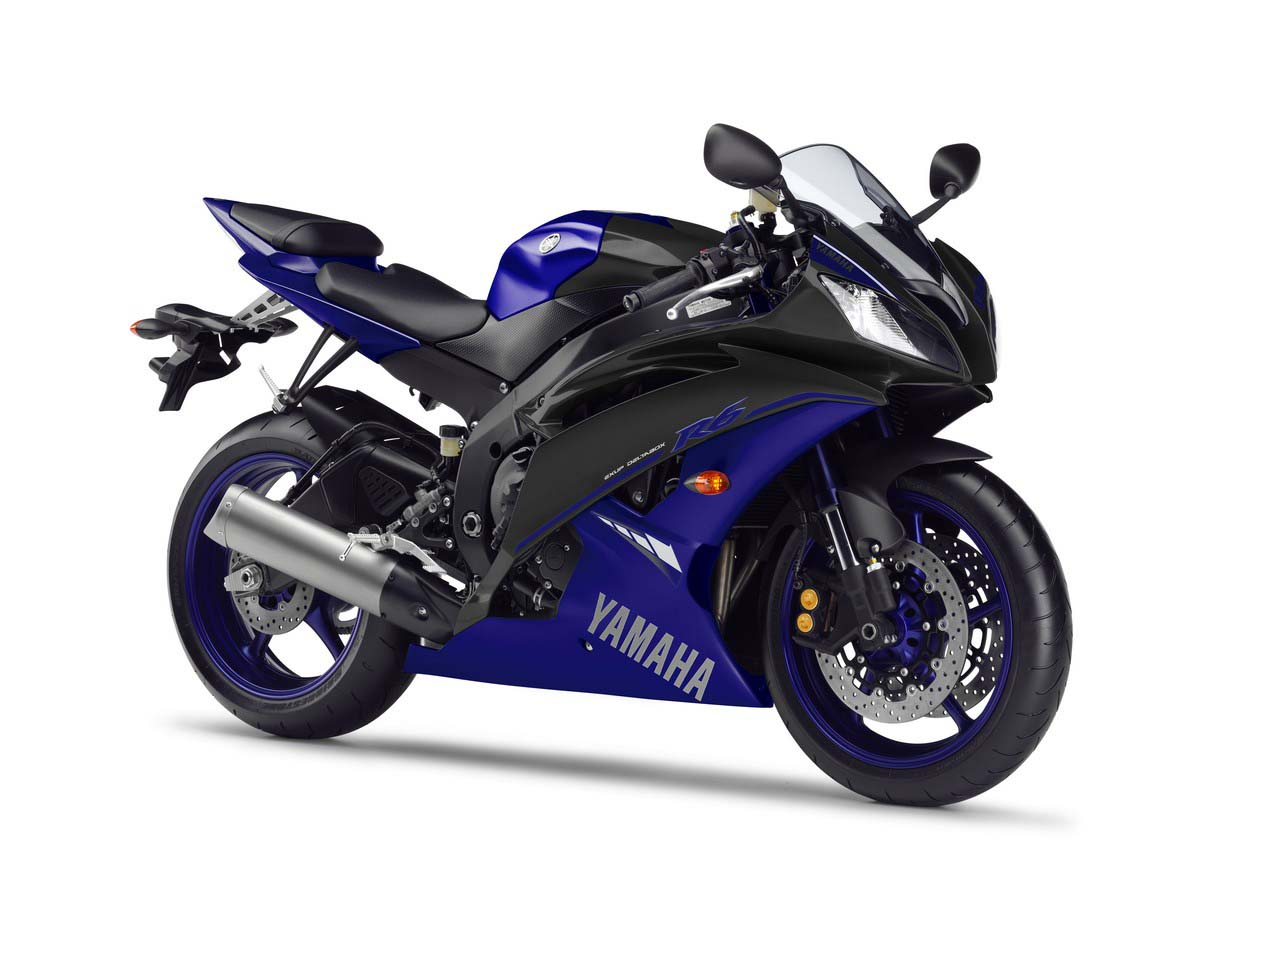 yamaha r6 black 2014 - photo #19